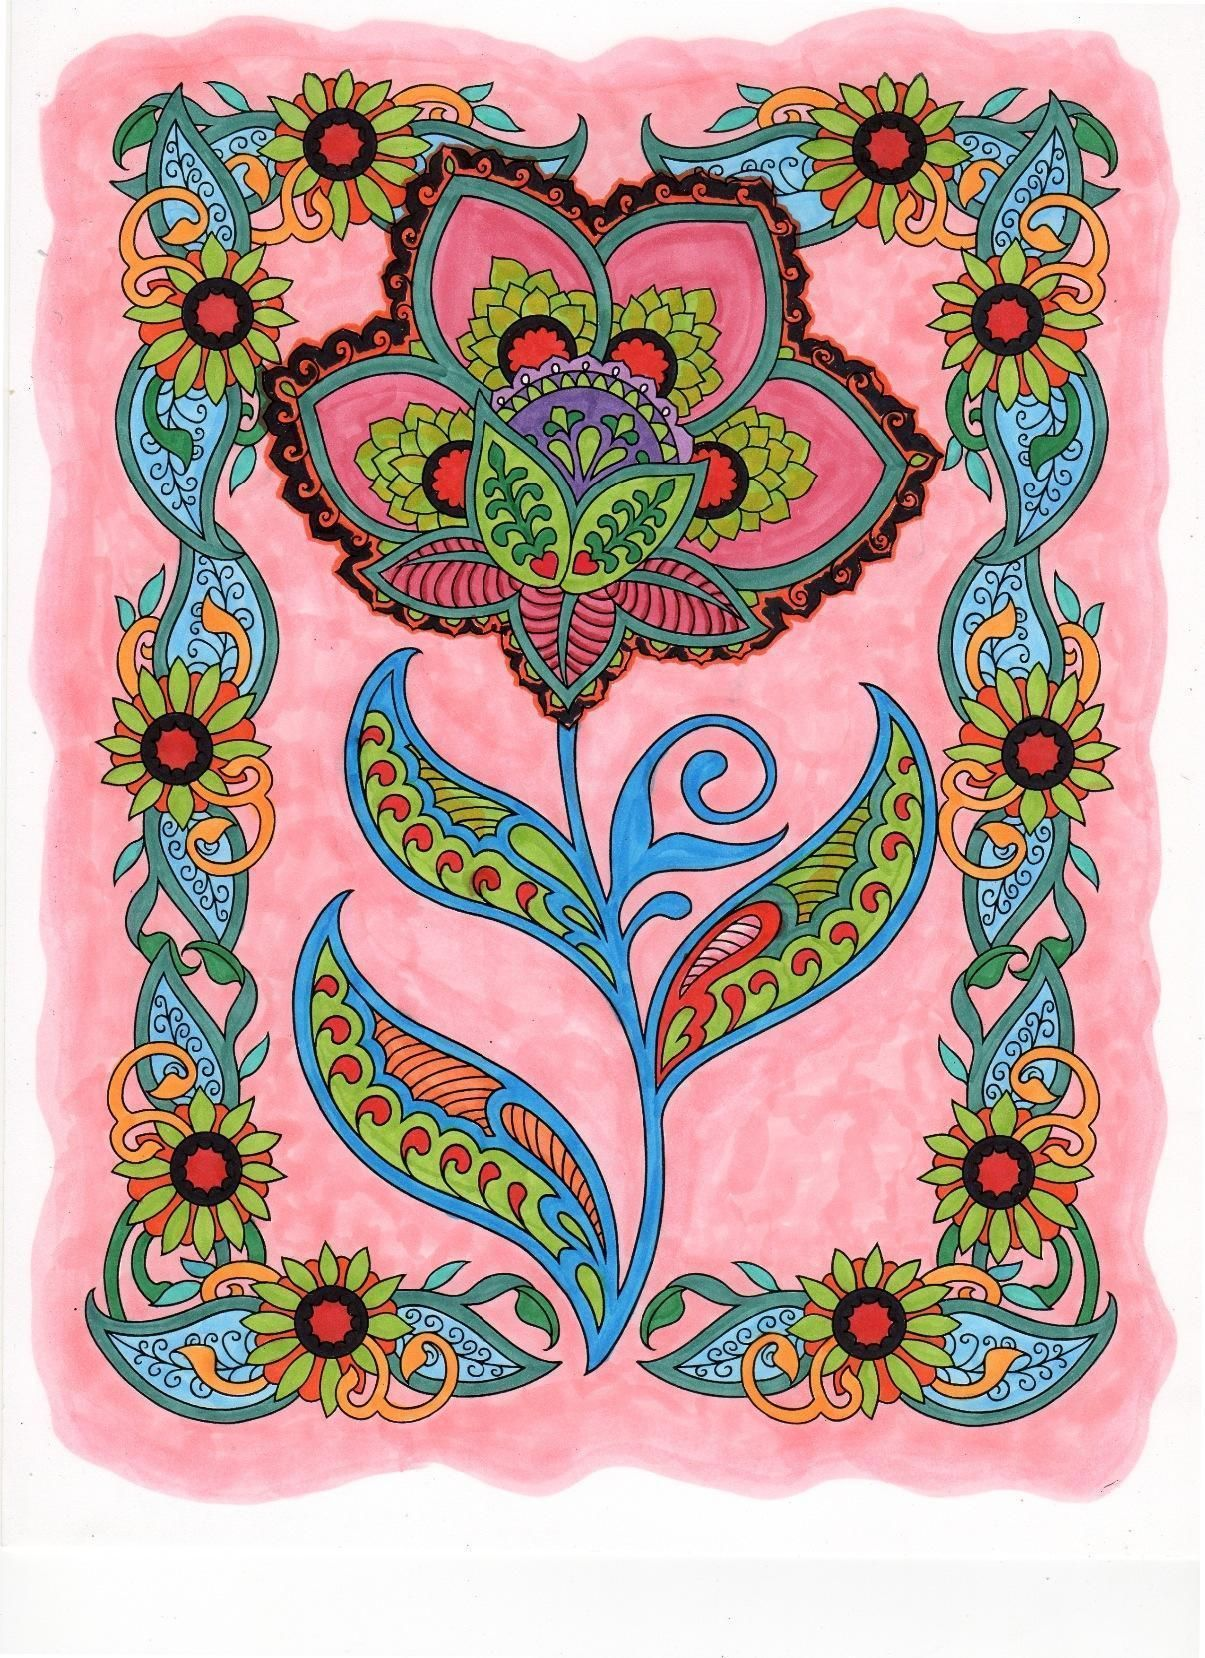 Dover Creative Haven Mehndi Designs Coloring Book Adult Marty Noble